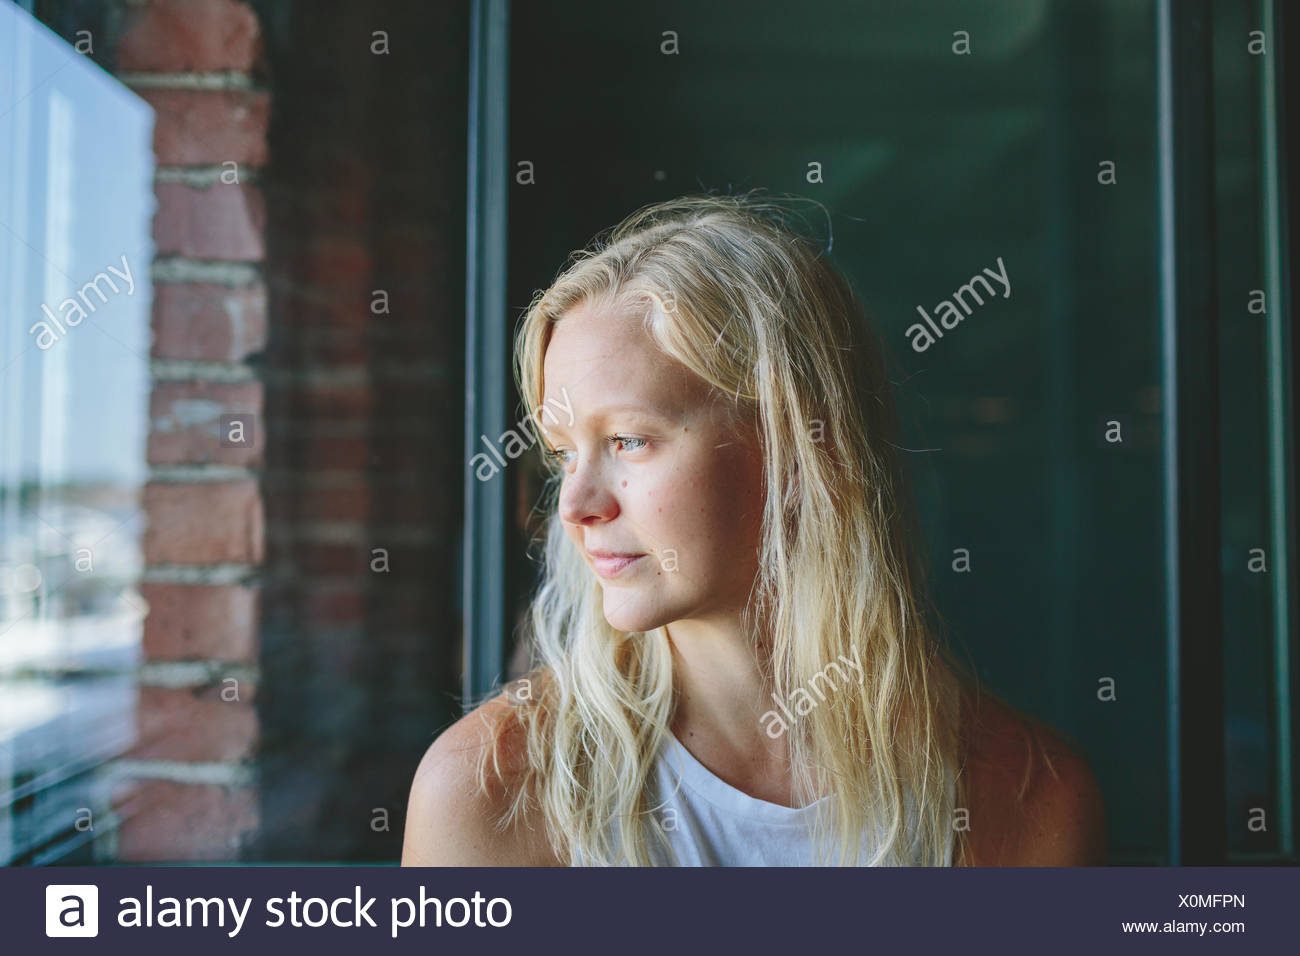 Finland, Mid-adult woman looking through window - Stock Image